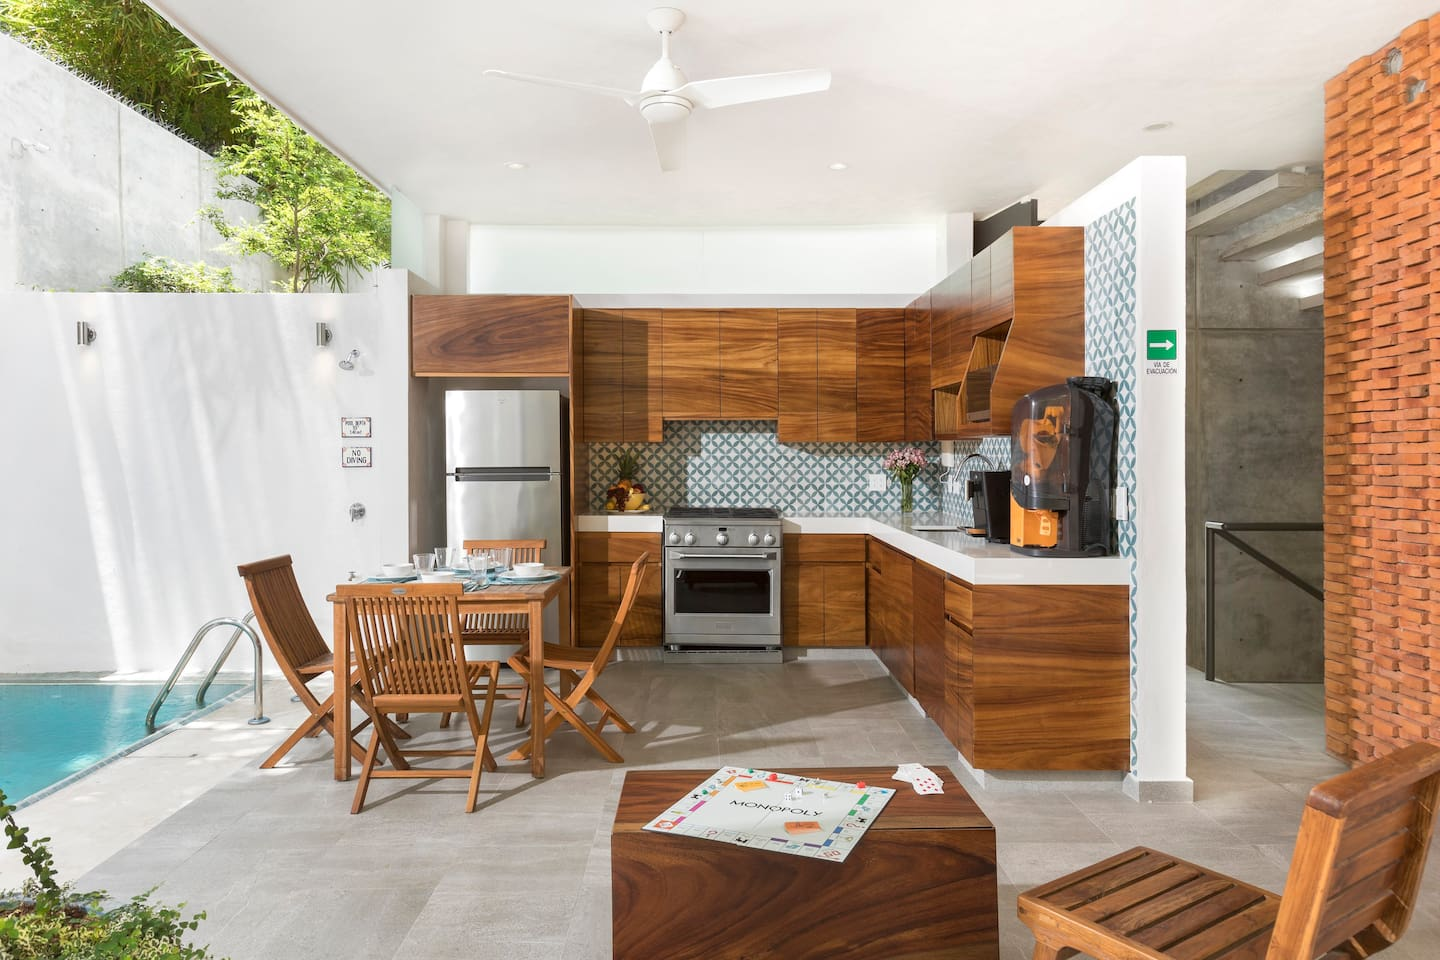 Completelly Equipped Kitchen, salt water pool, social area, a block to Ocean. Next to the Beach Polo Club. 15 min. walk to town. Short or long stay rentals, We have 2  private suites and one guest house. total : 10 people max. Guest House next door.